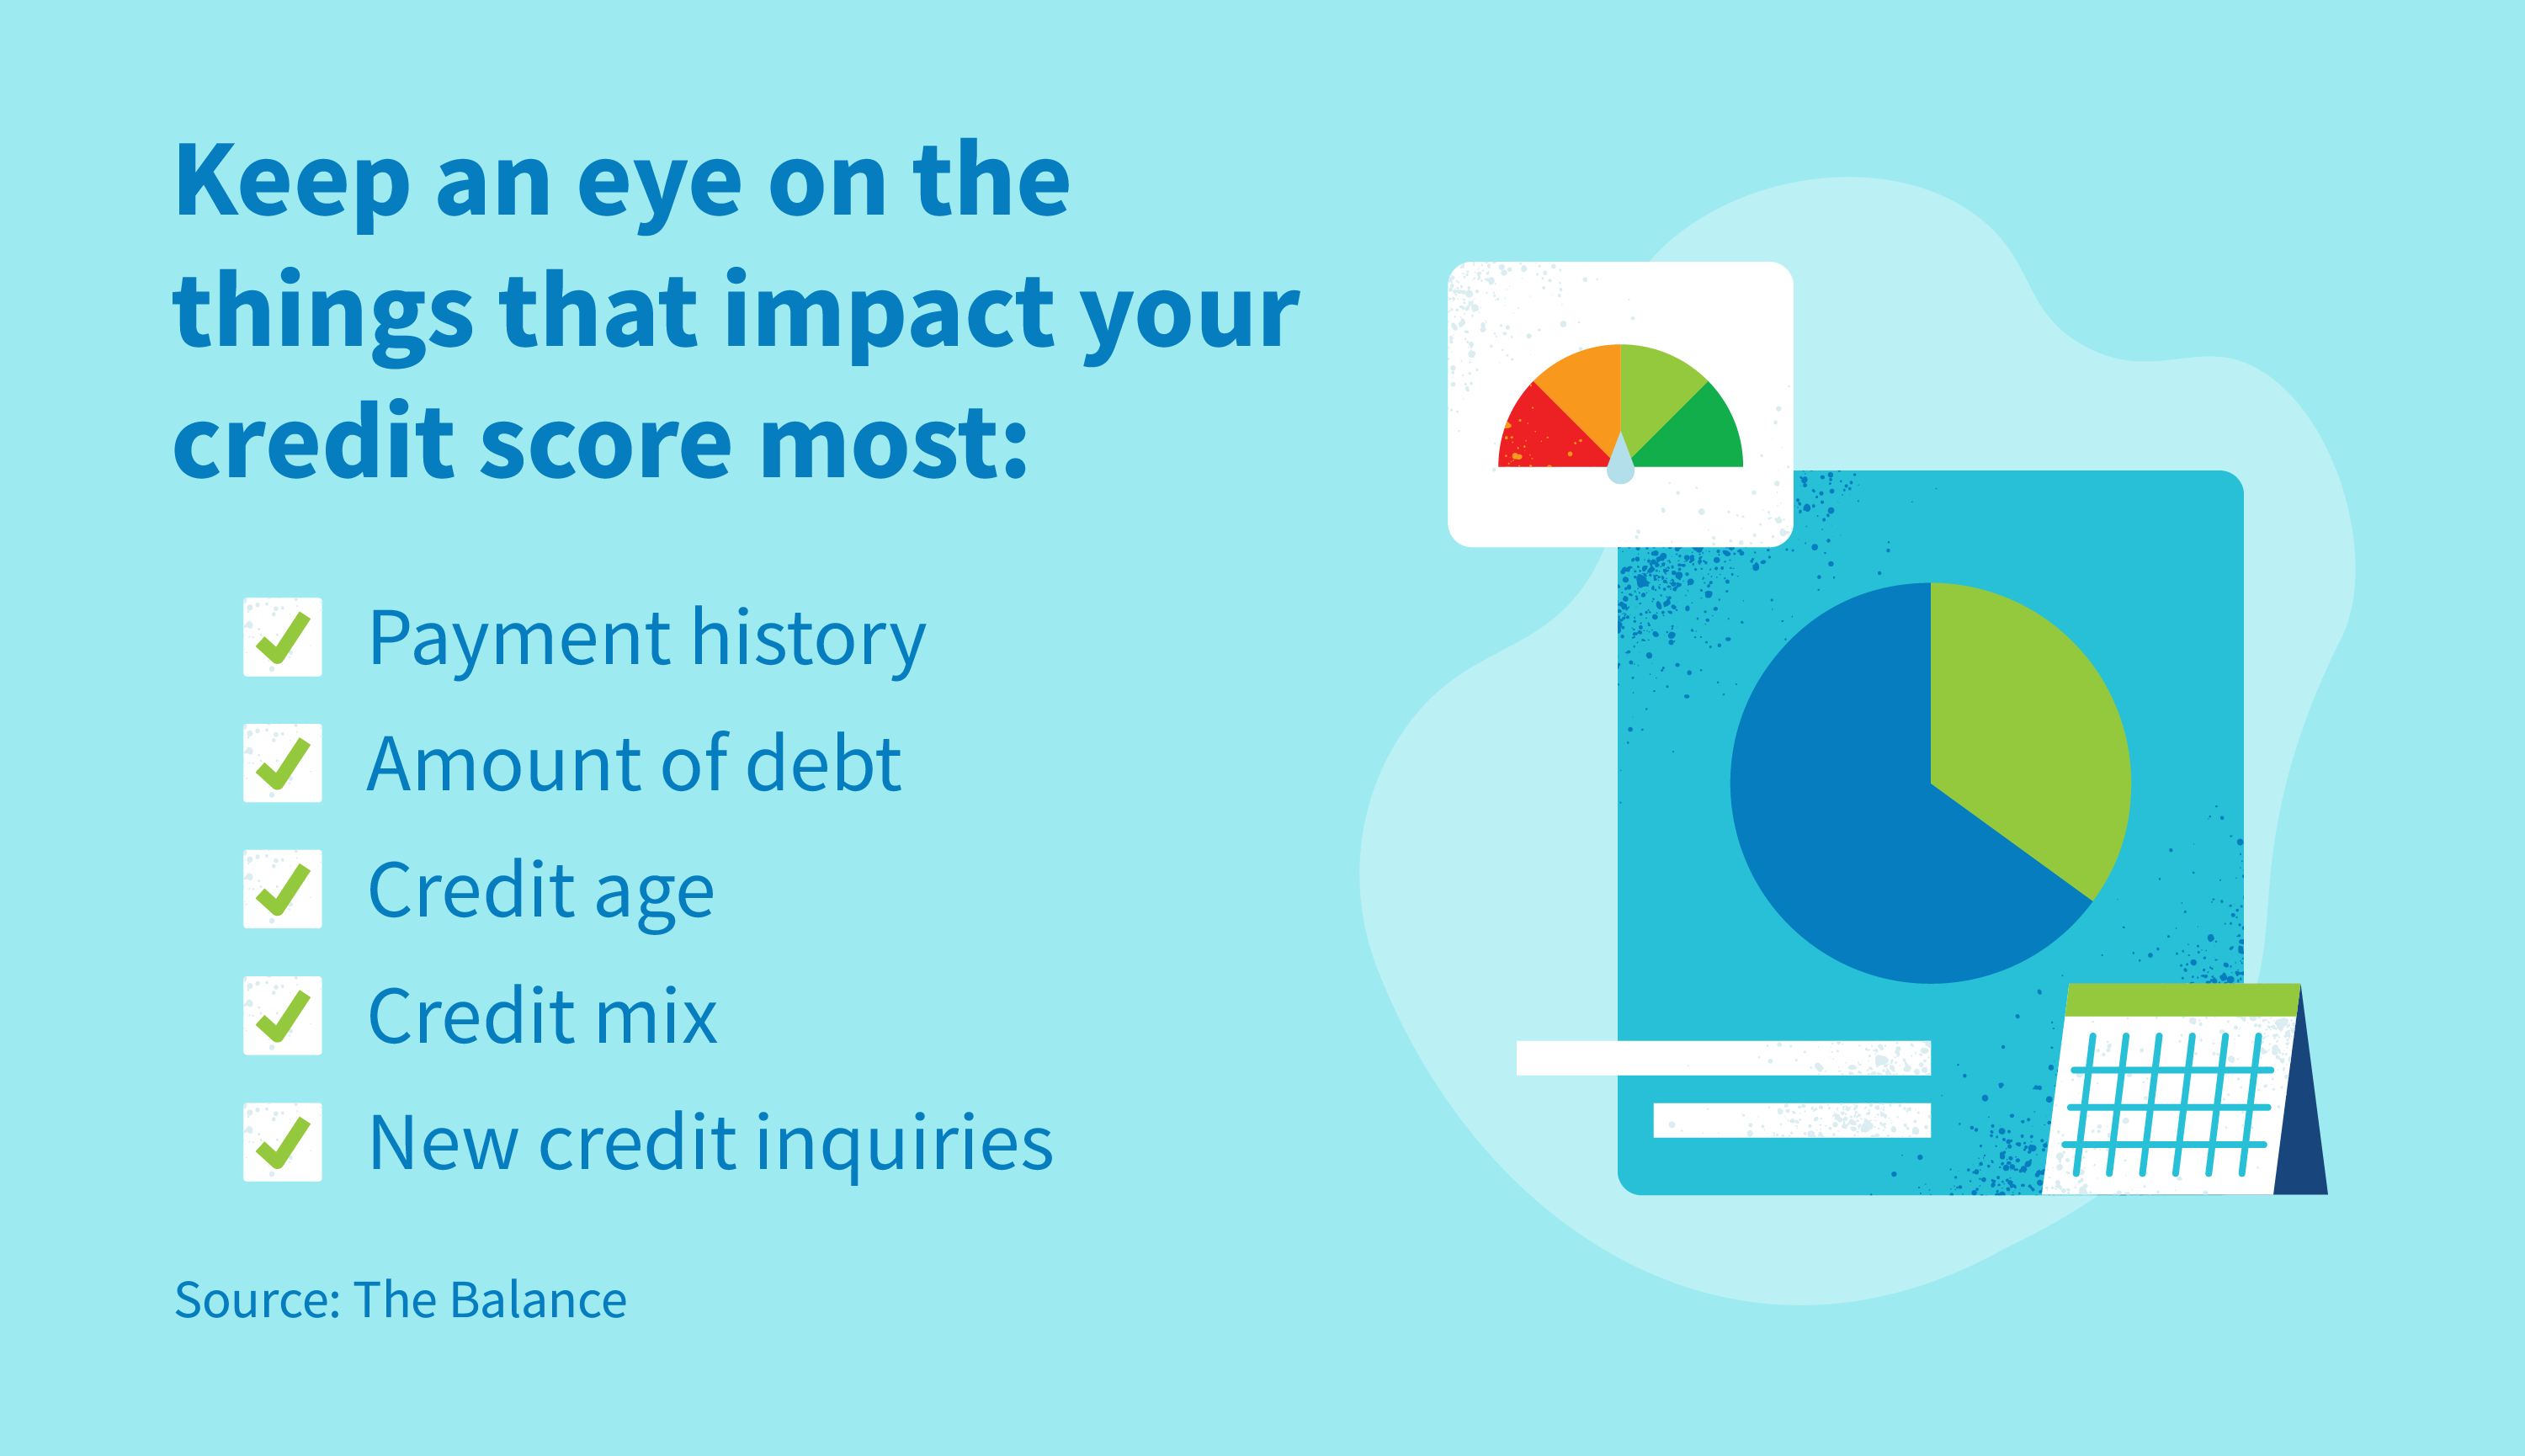 Keep an eye on the things that impact your credit most: payment history, amount of debt, credit age, credit mix and new credit inquiries.